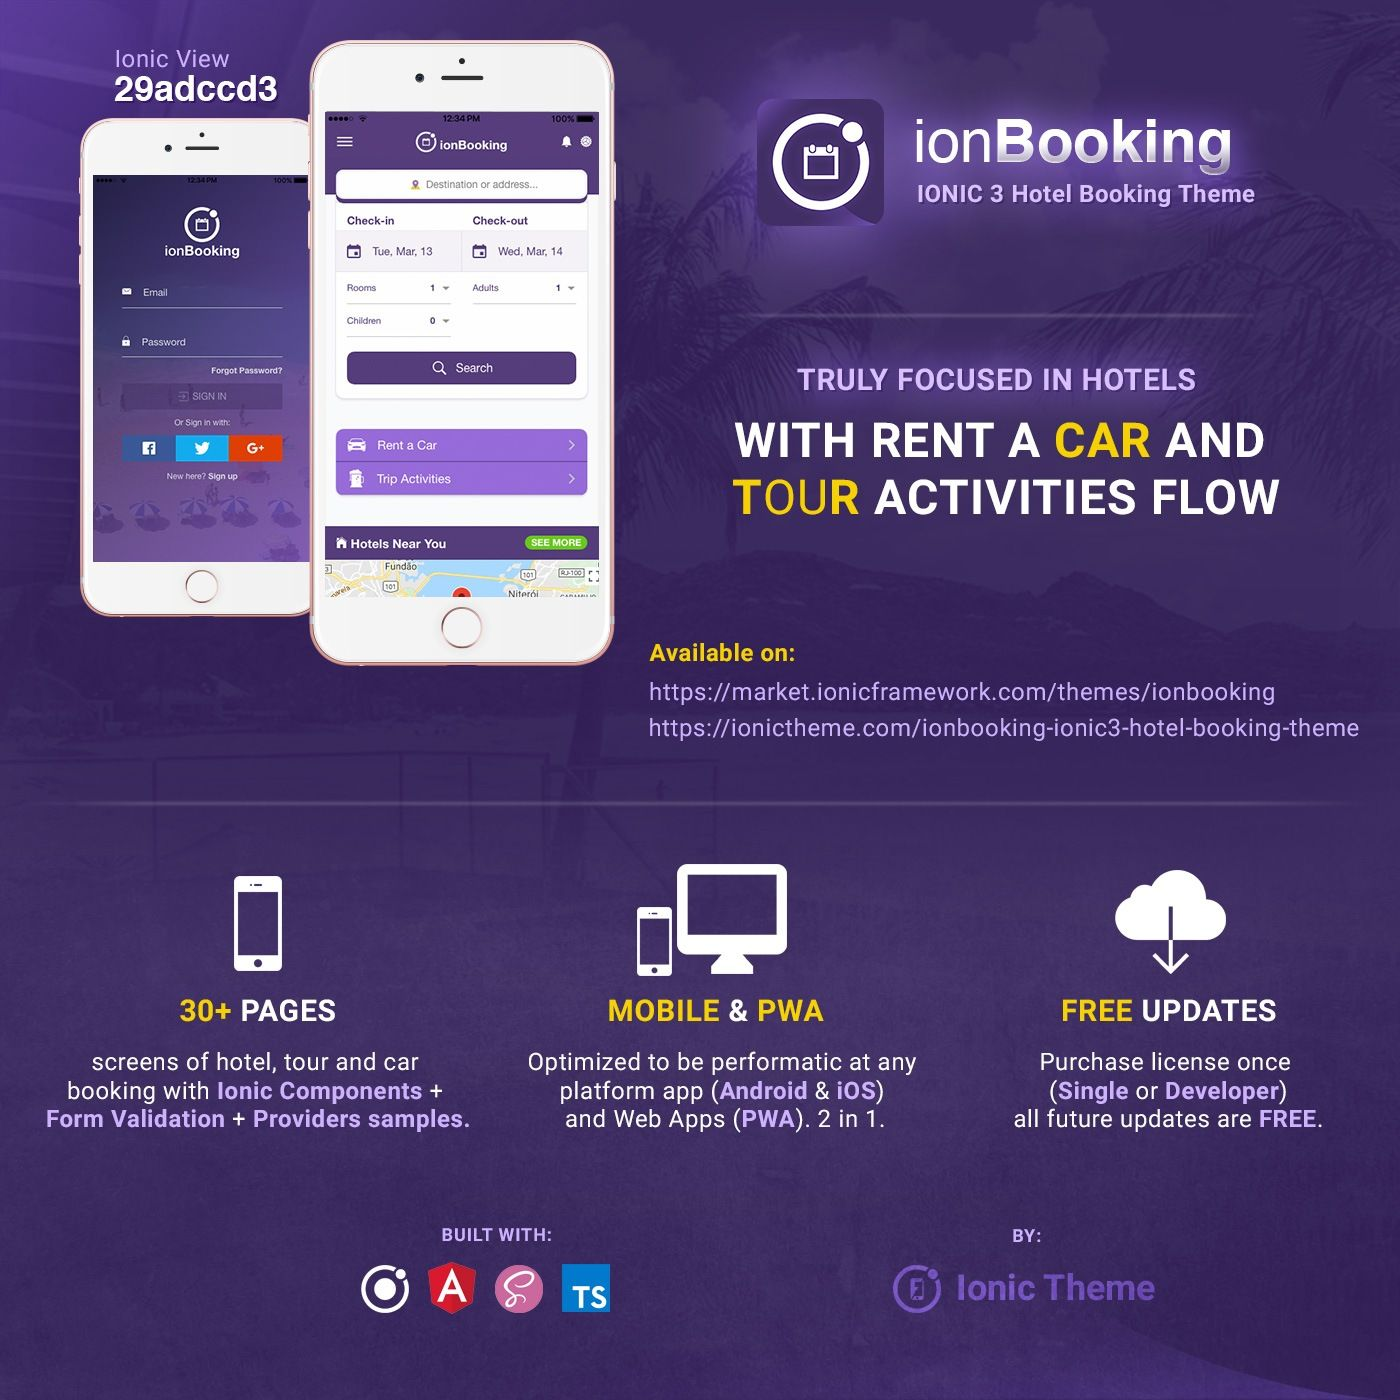 ionBooking 1.4 Completely Refactored Truly focused in